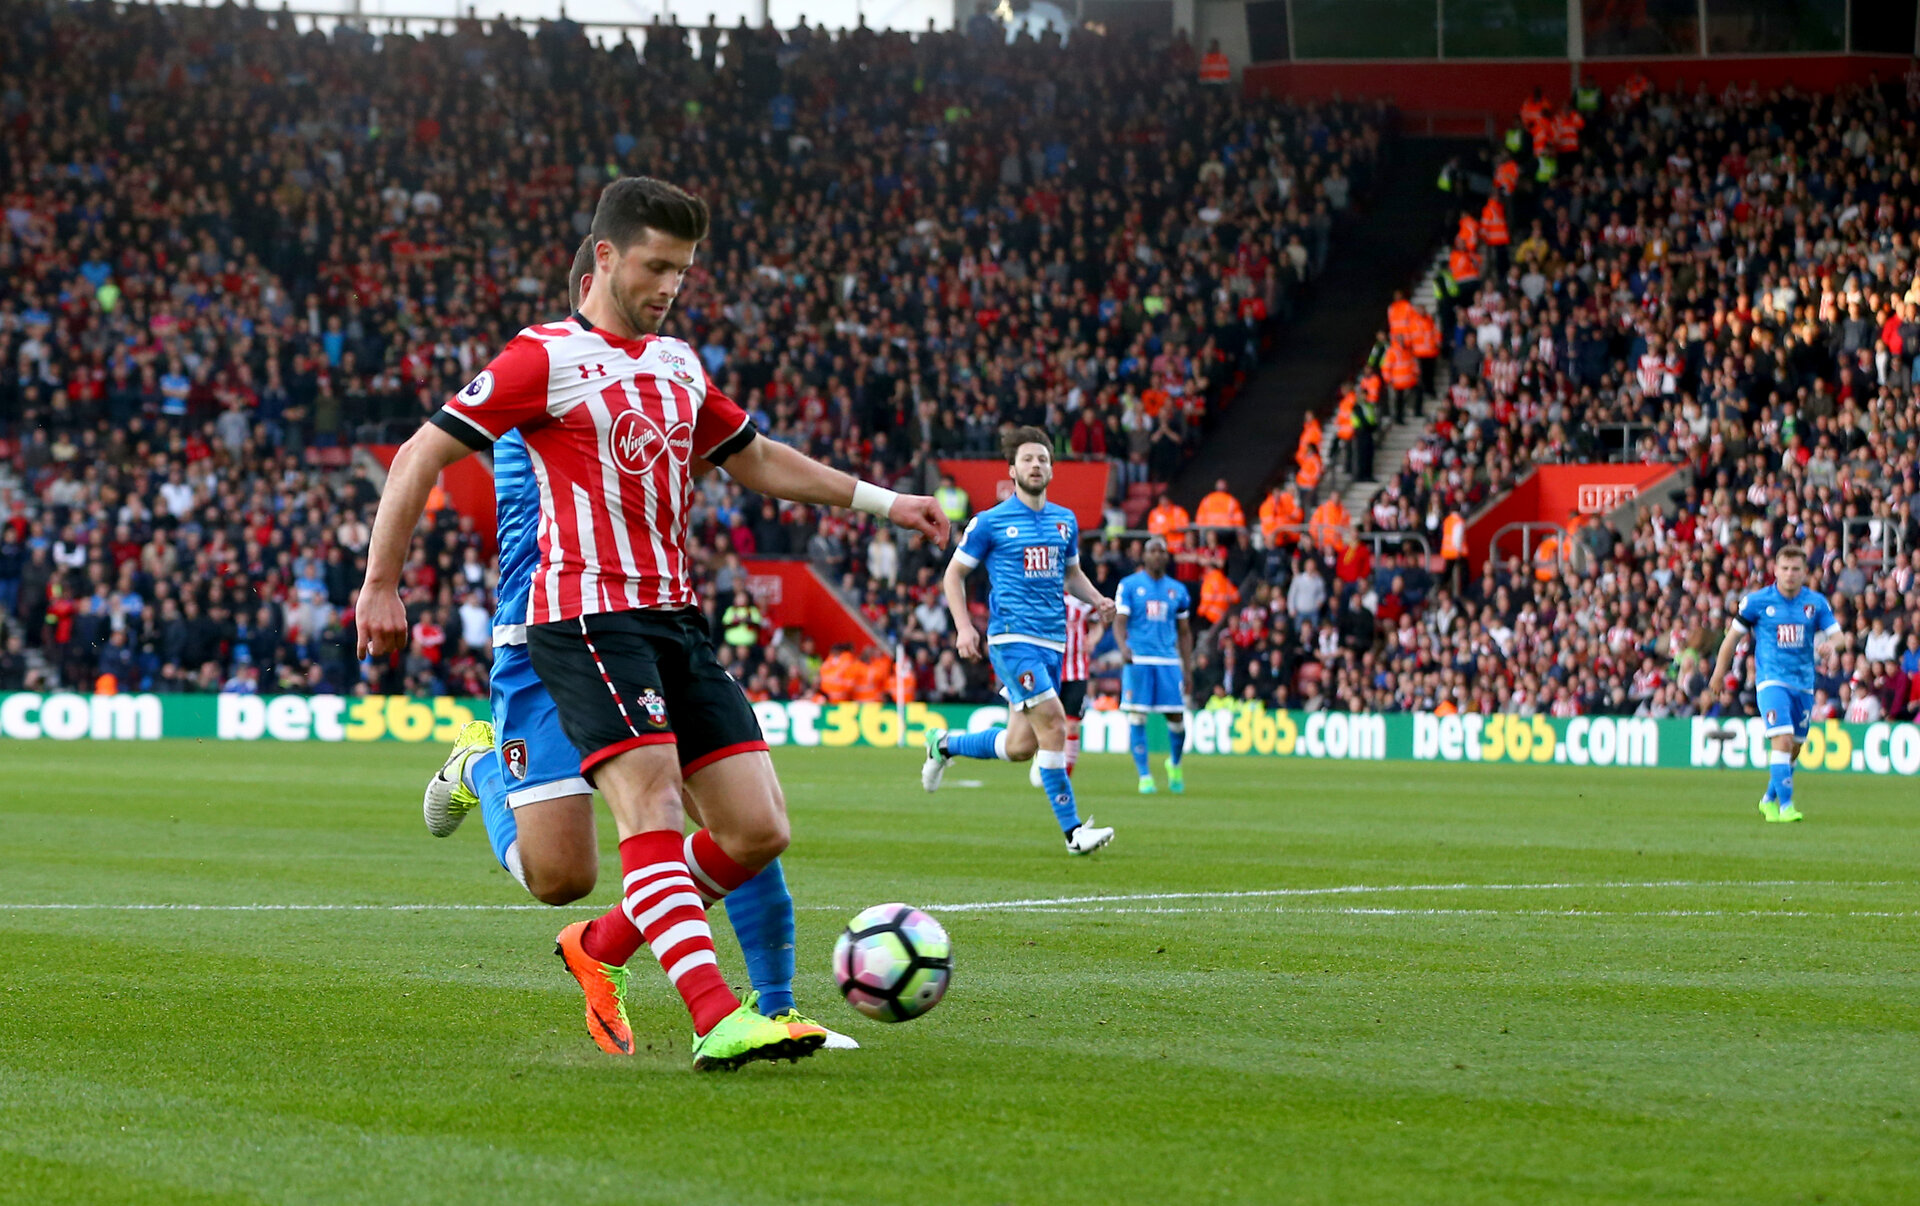 Shane Long during the Premier League match between Bournemouth and Southampton at Vitality Stadium, Bournemouth, England on 18 December 2016. Photo by Matt Watson/SFC/Digital South.